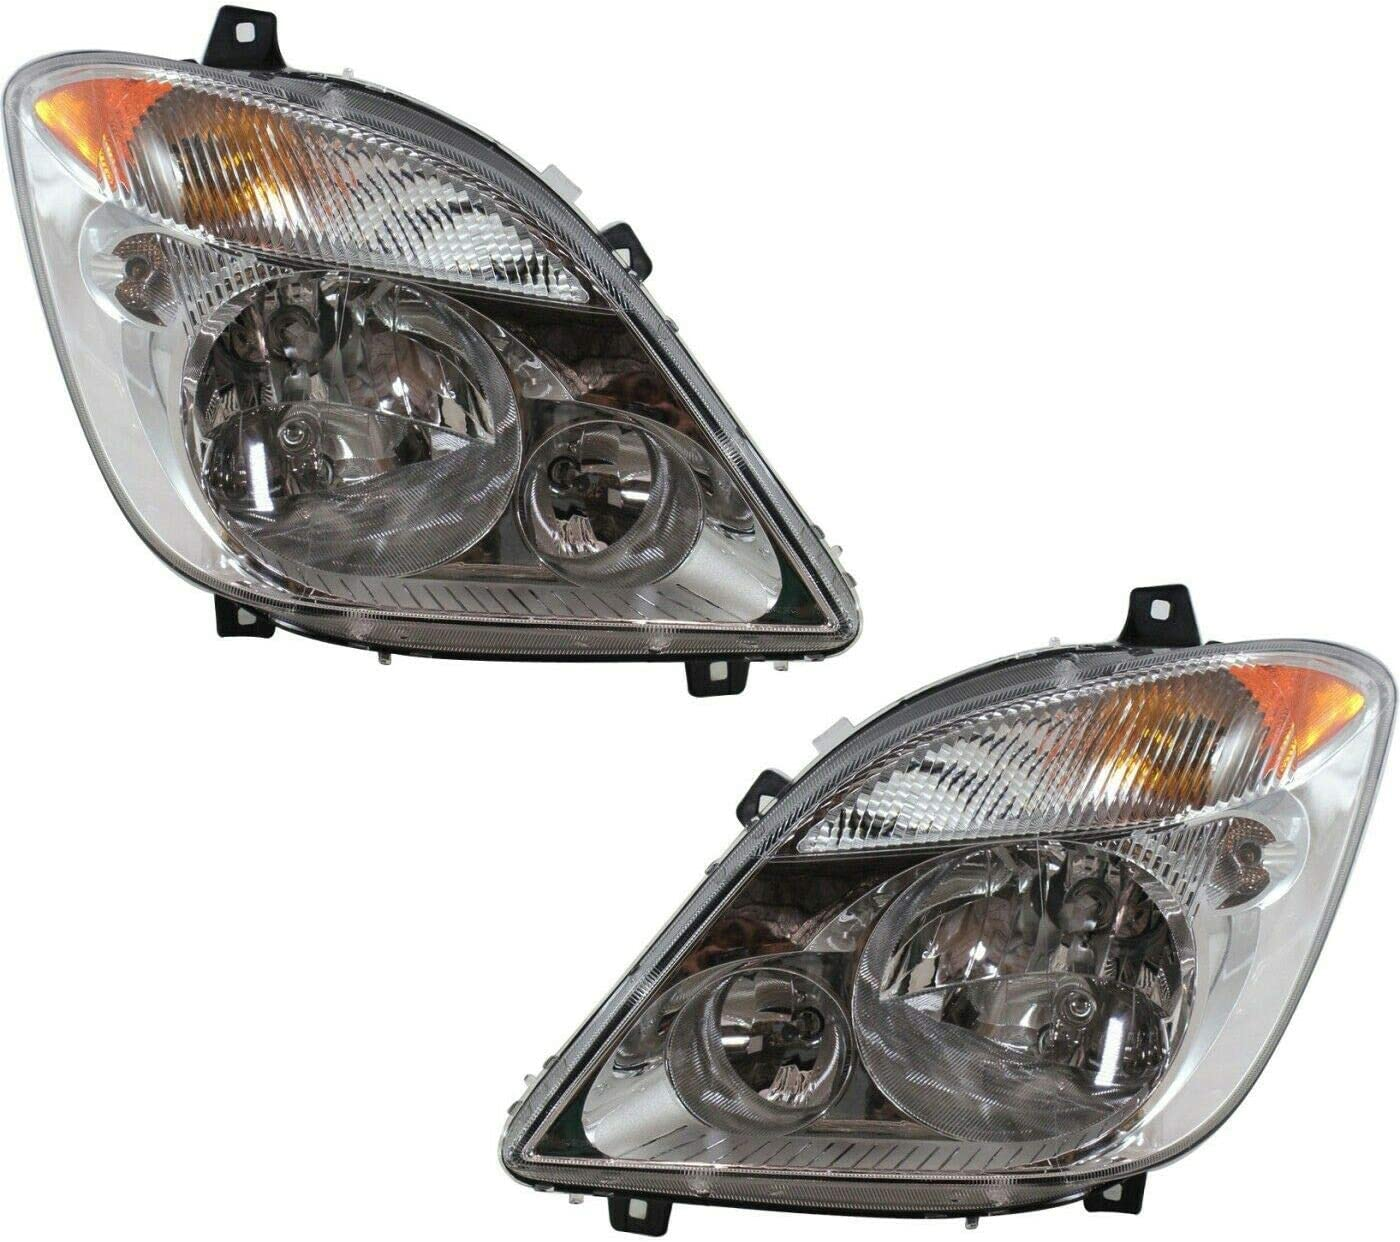 Headlight Lowest price challenge Set For 55% OFF 2500 3500 w L+R bulb Side